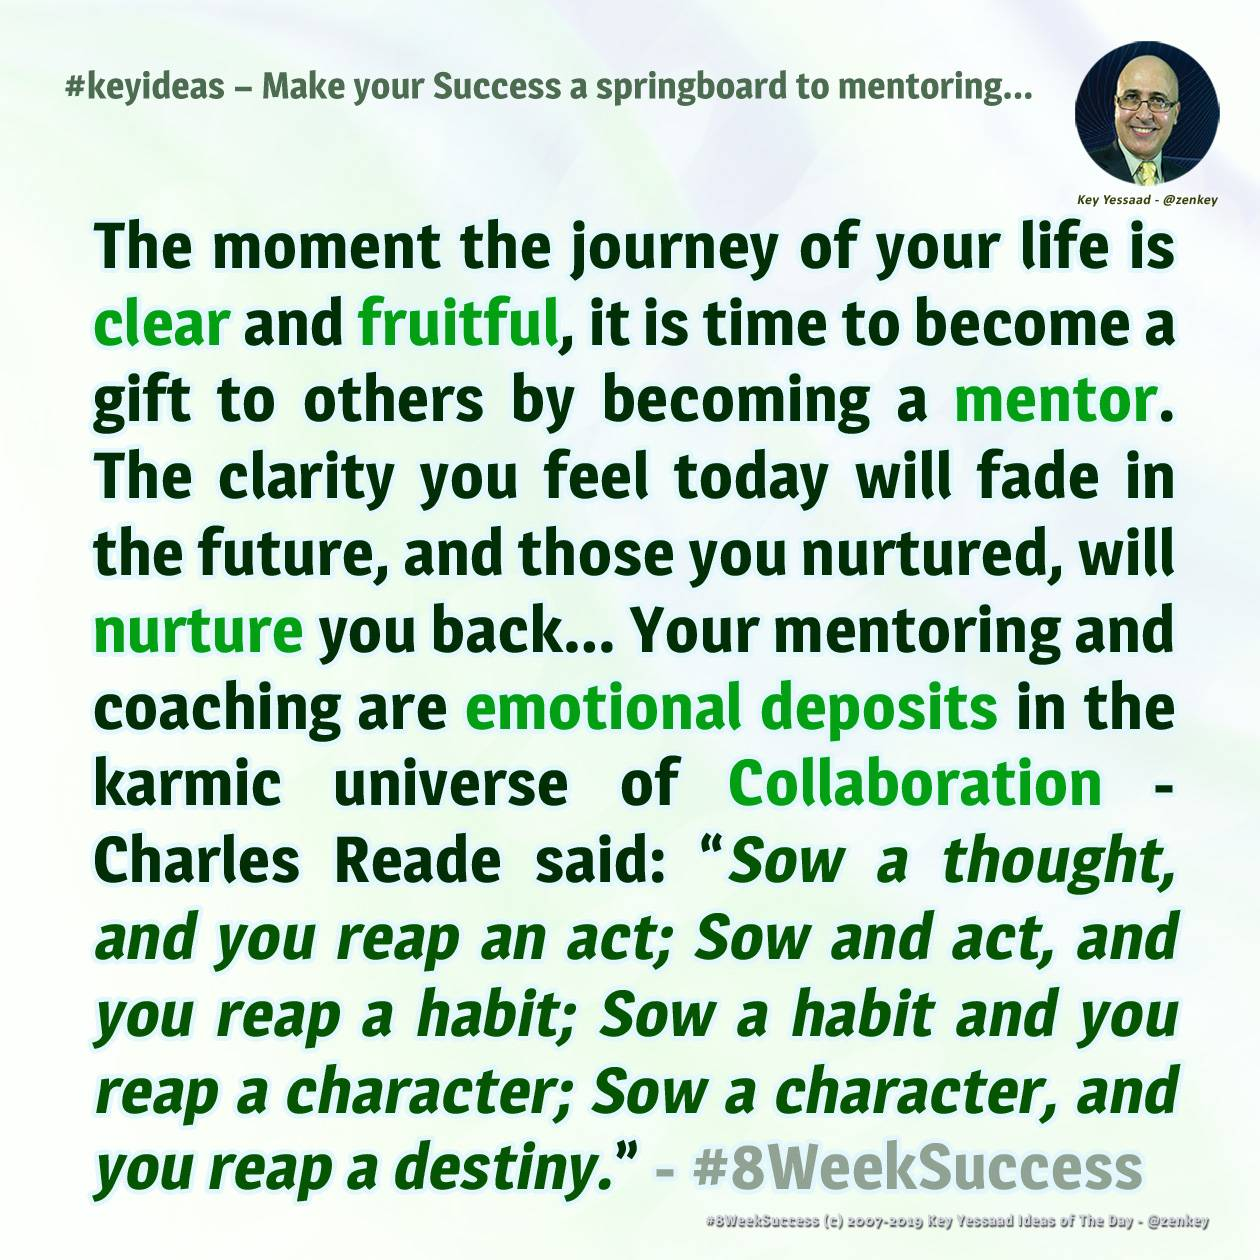 Make your Success a springboard for mentoring, Coaching, and Collaboration - #8WeekSuccess